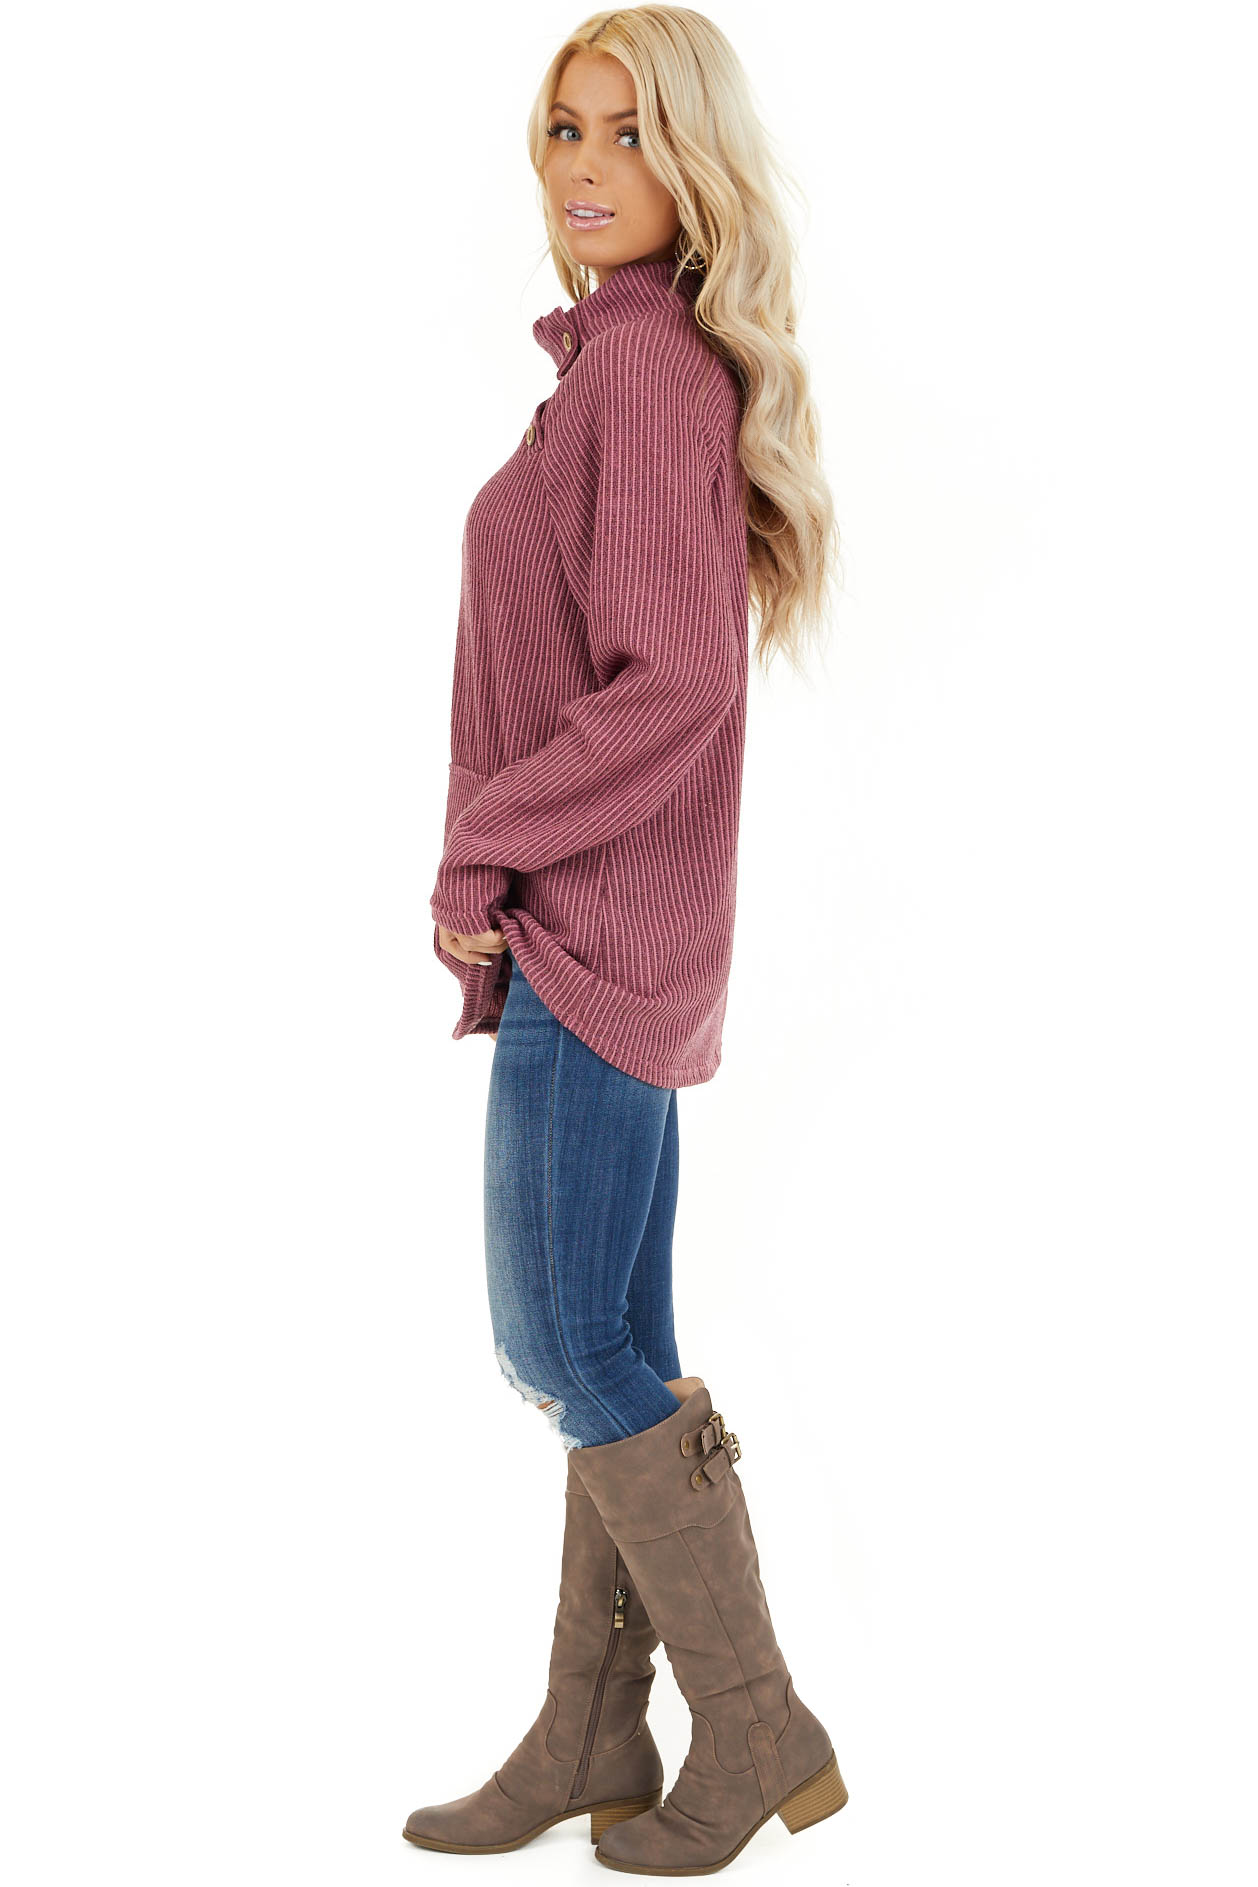 Dusty Mauve Ribbed Knit Mock Neck Top with Button Detail side full body